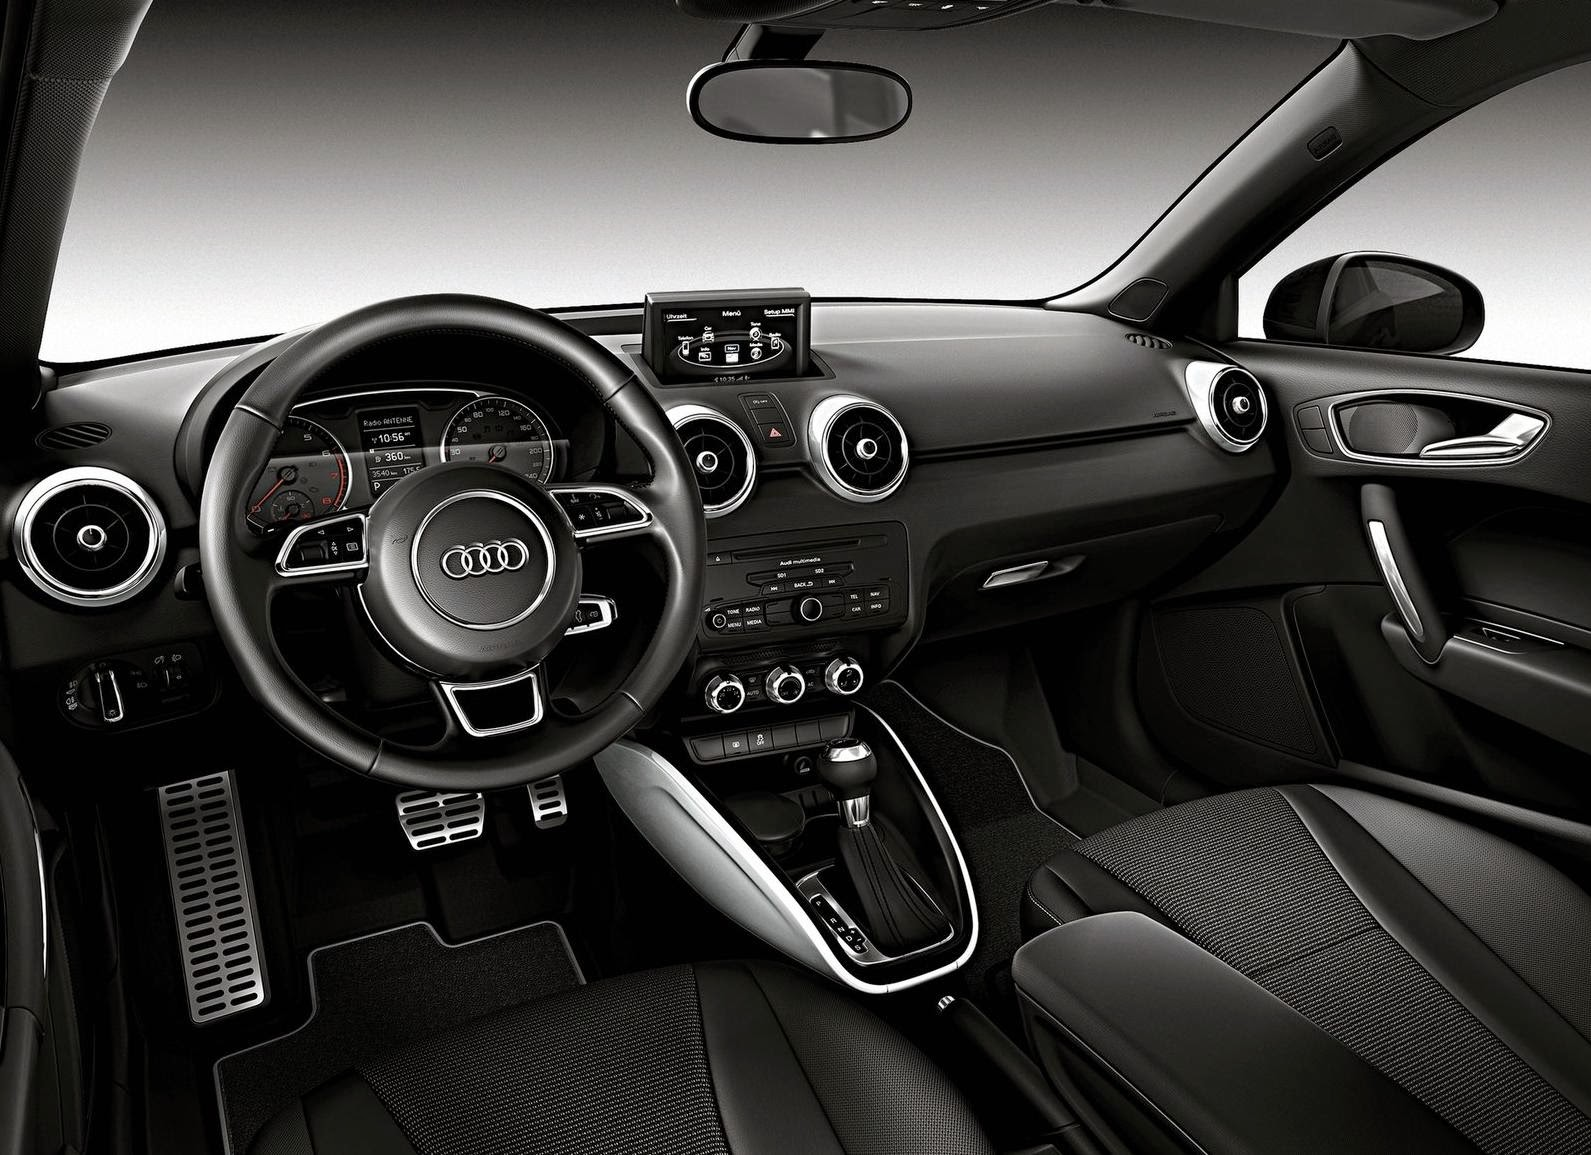 Audi A1 Amplified 2012 Full-screen Desktop Wallpaper